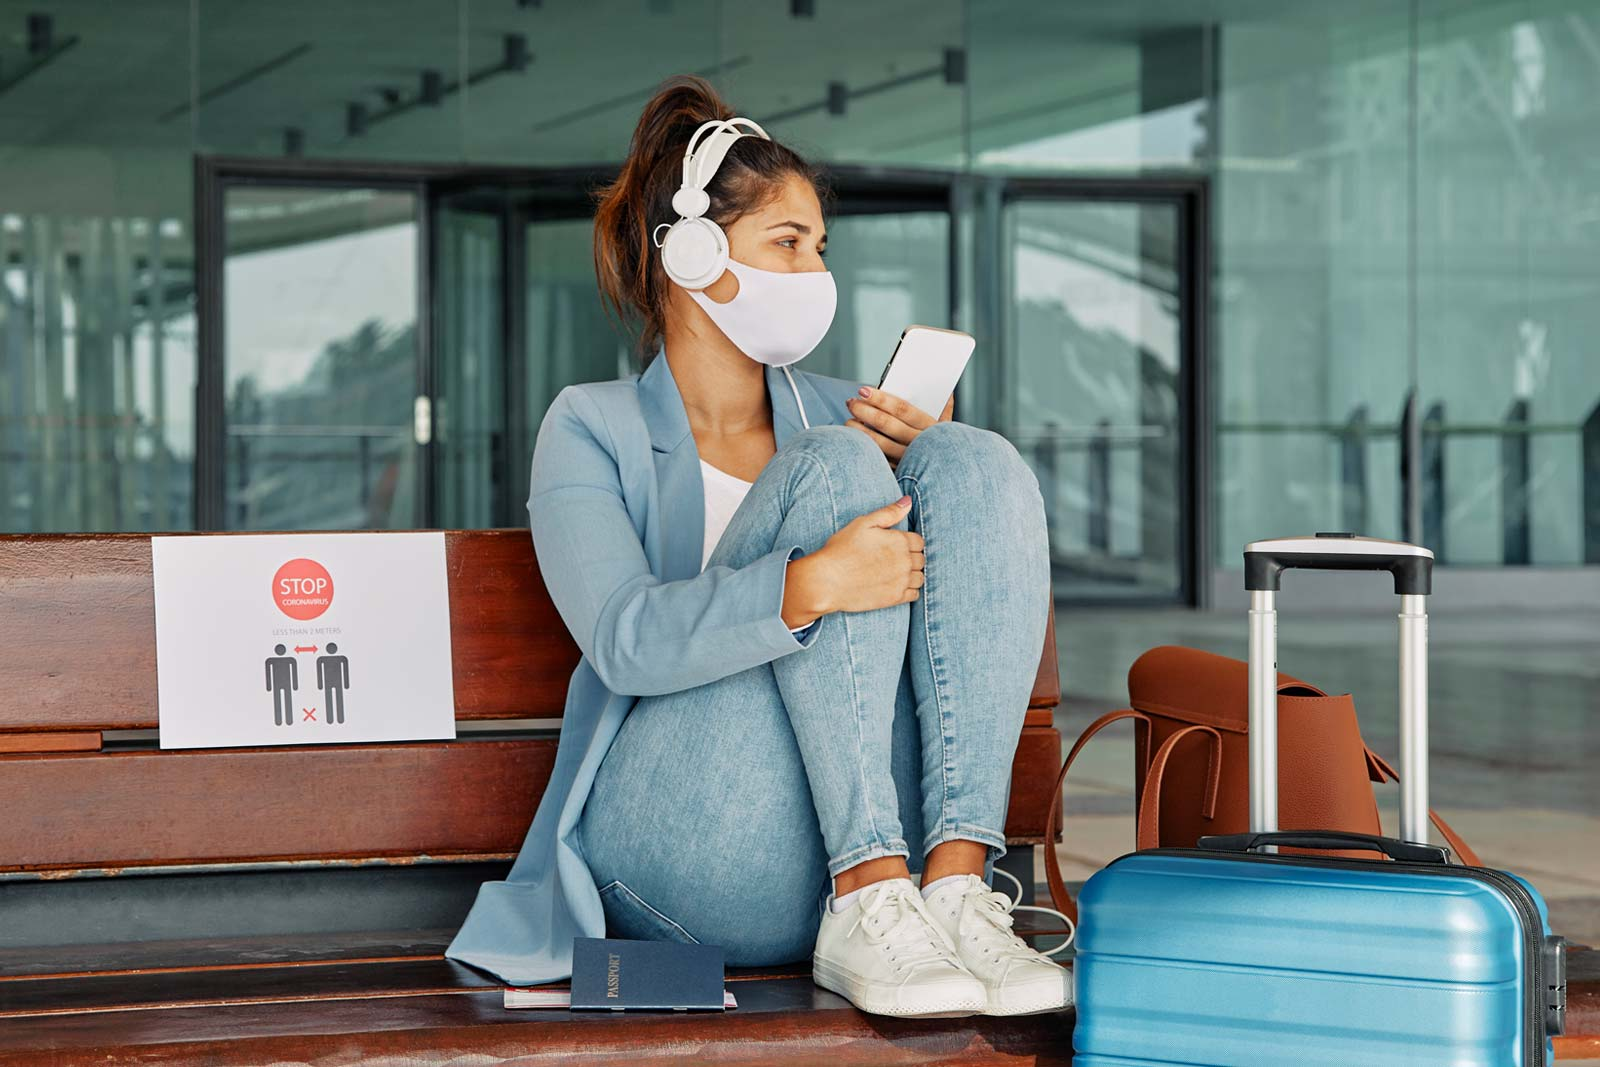 Woman with COVID-19 mask and headphones in the airport during pandemic